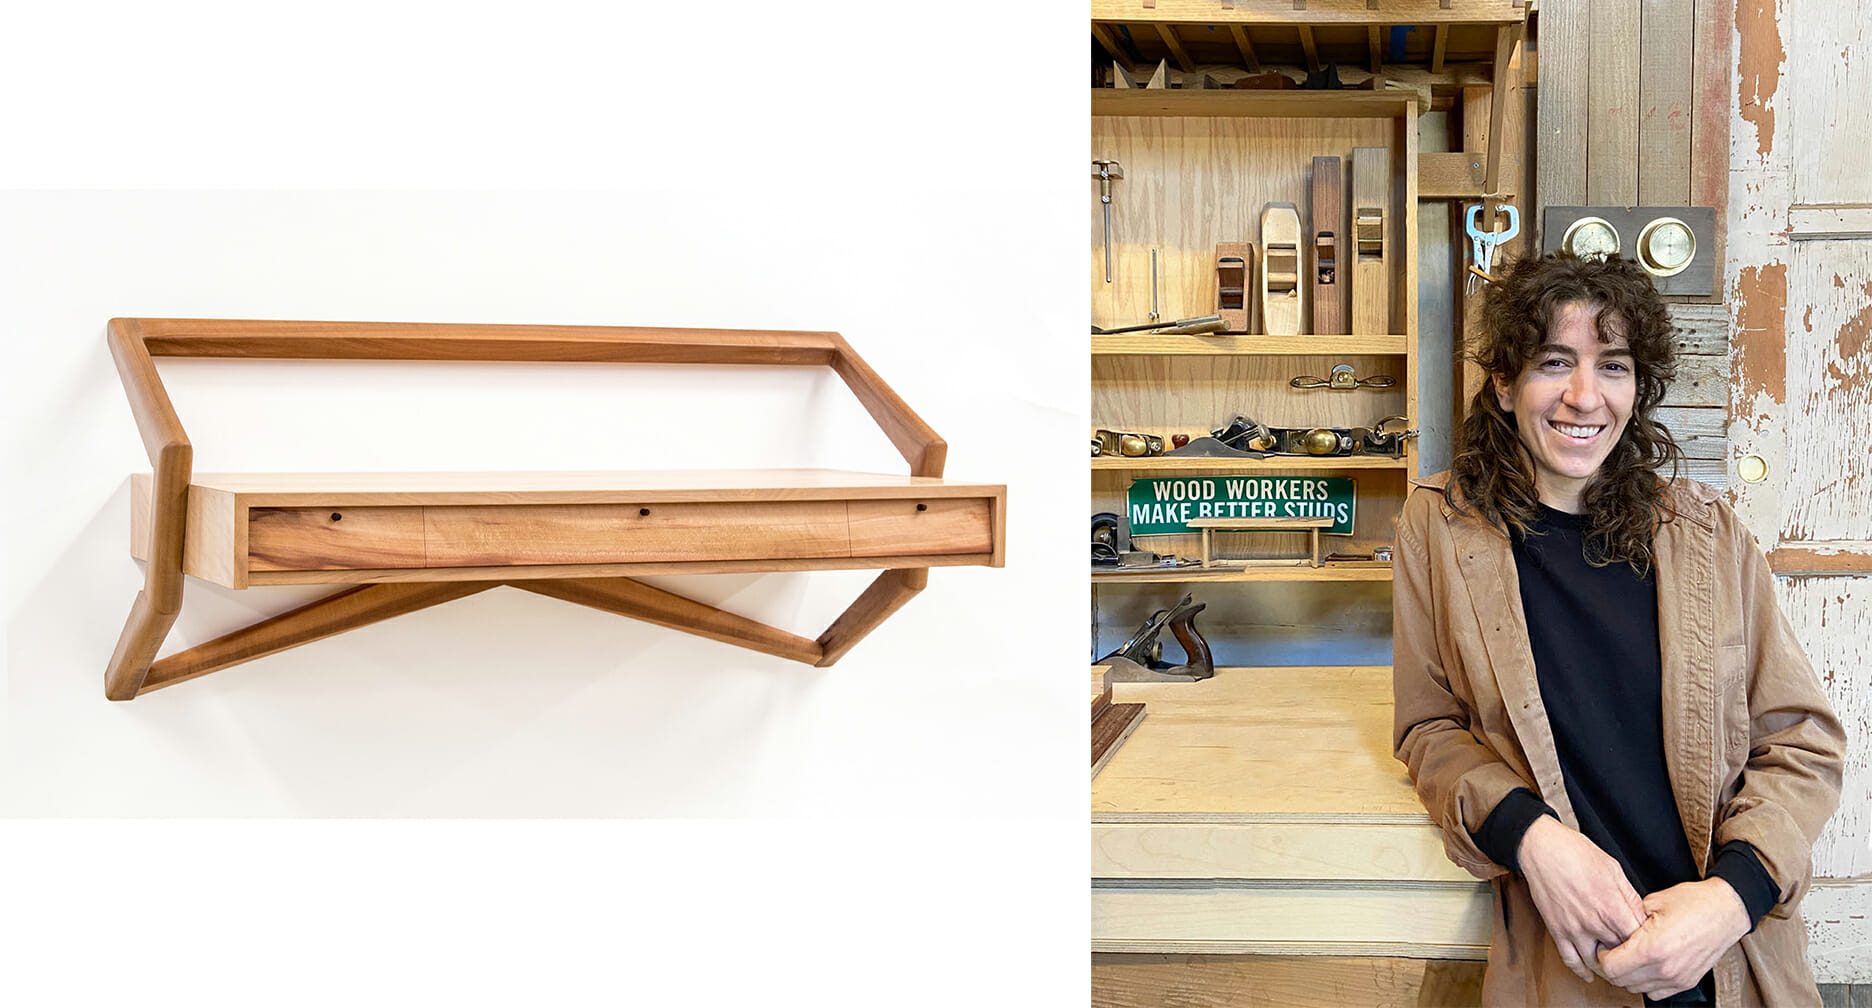 on the left os a photo of a wall hung desk with three slender drawers and slender wood brackets that support the desk; on the right is a woman with brown curly hair leaning on a worktable with woodshop tools on the wall behind her.